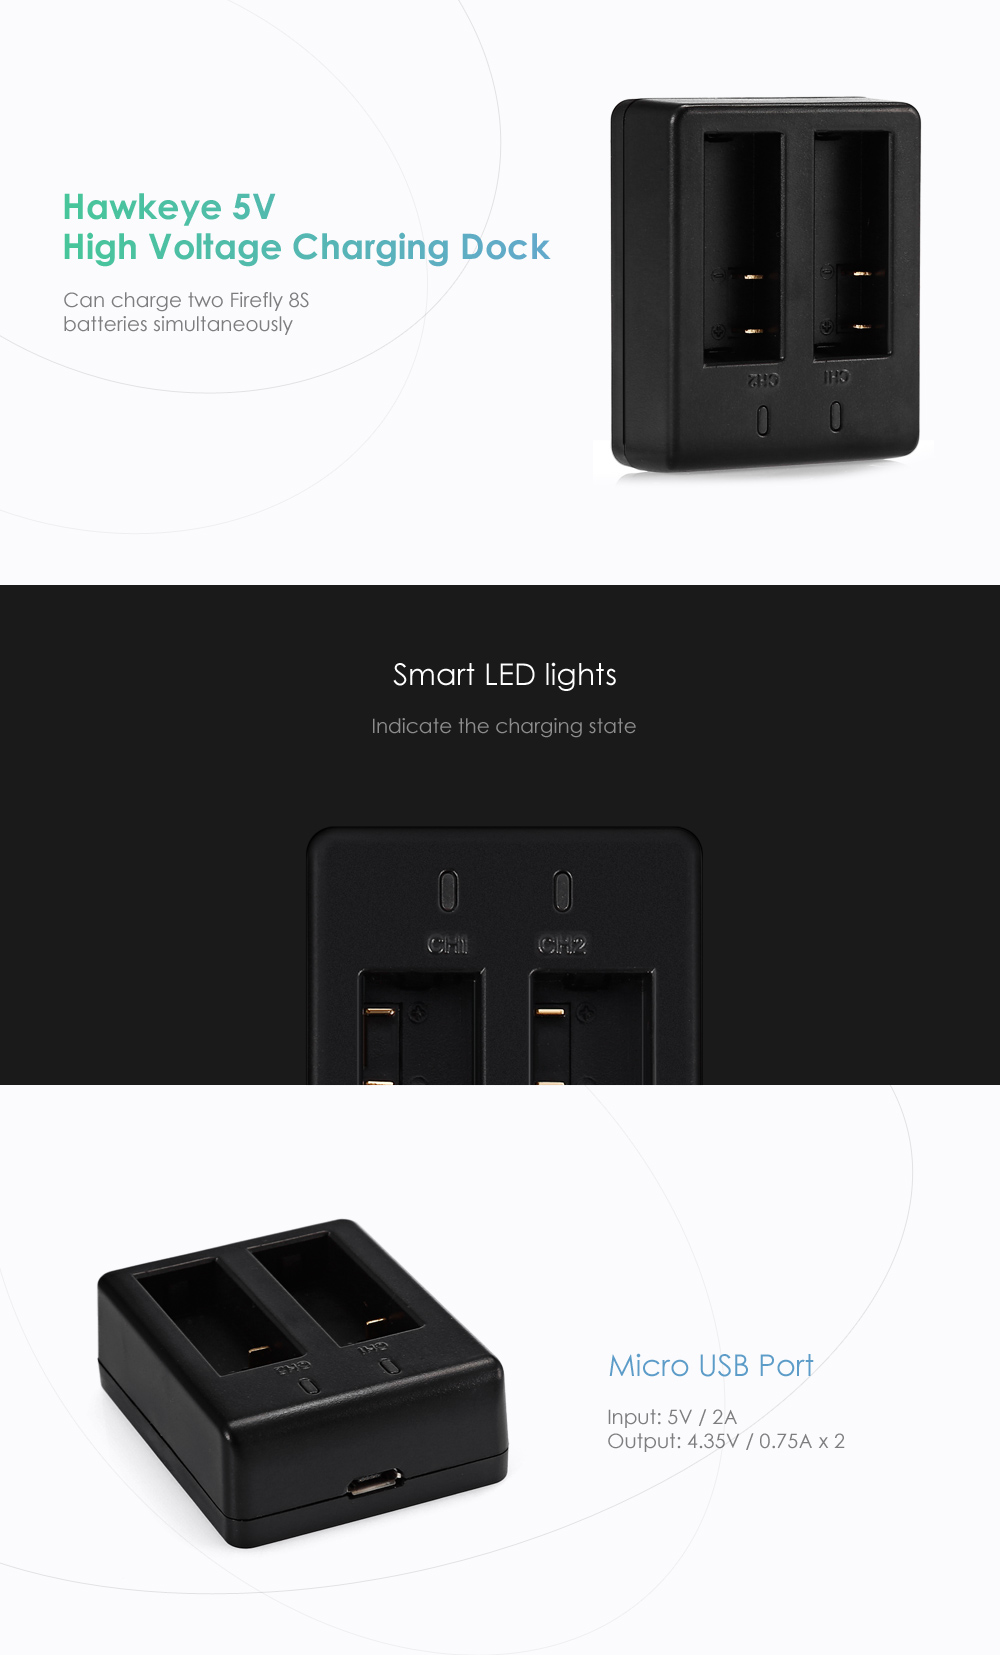 Hawkeye 5V Dual-slot Charging Dock for Firefly 8S Battery